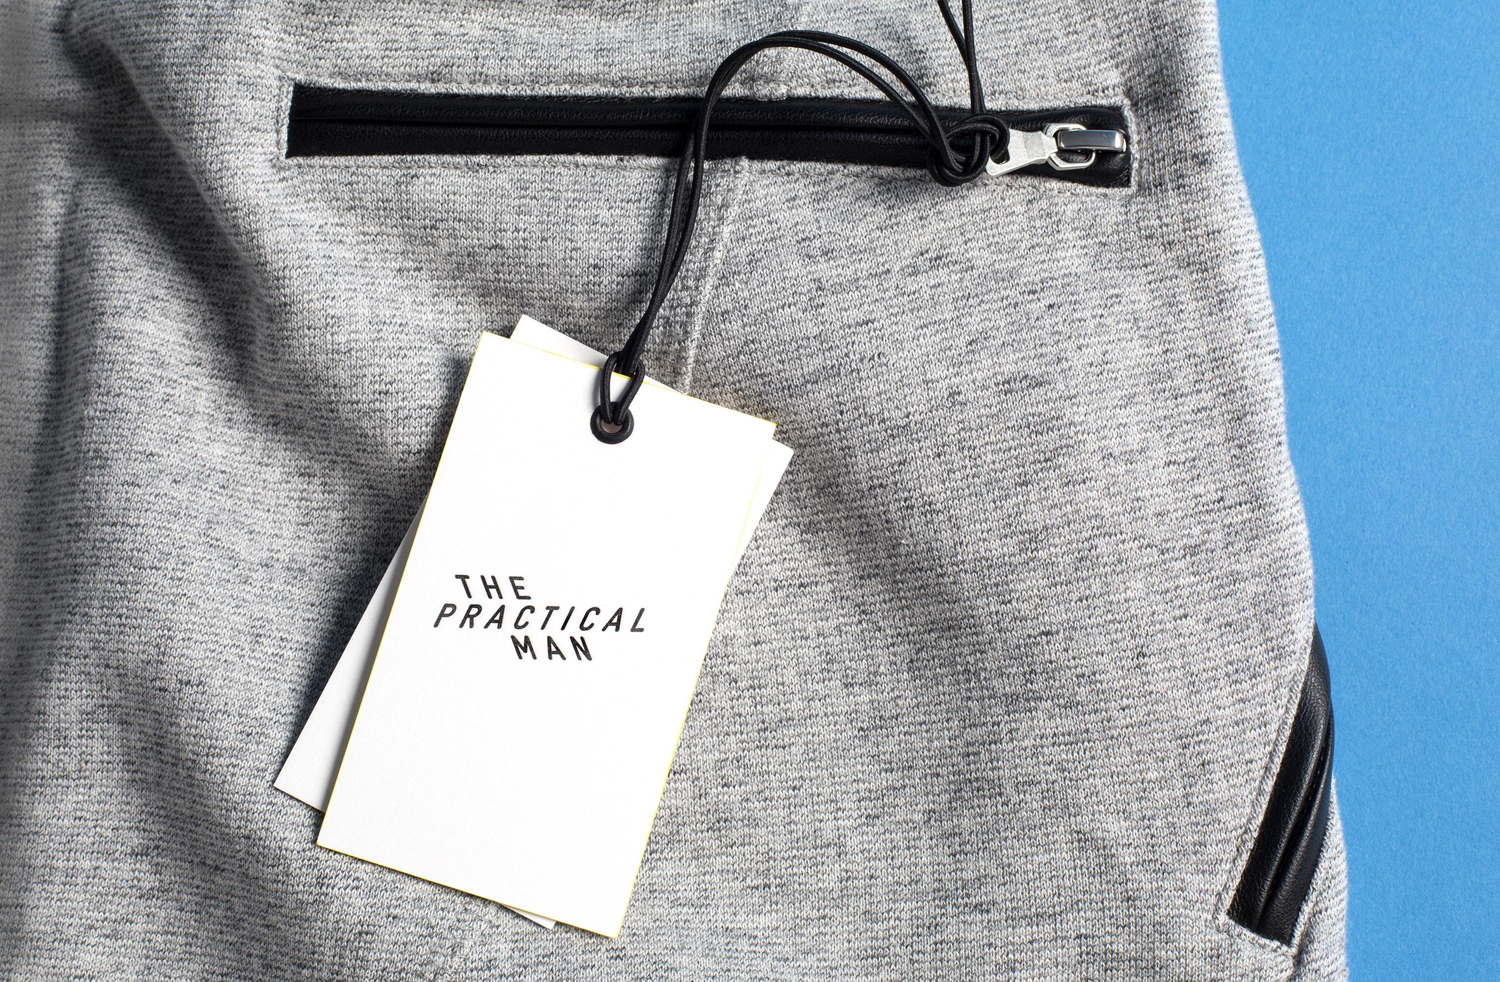 Branding for sports and fashion retailer The Practical Man by Australian graphic design studio Garbett